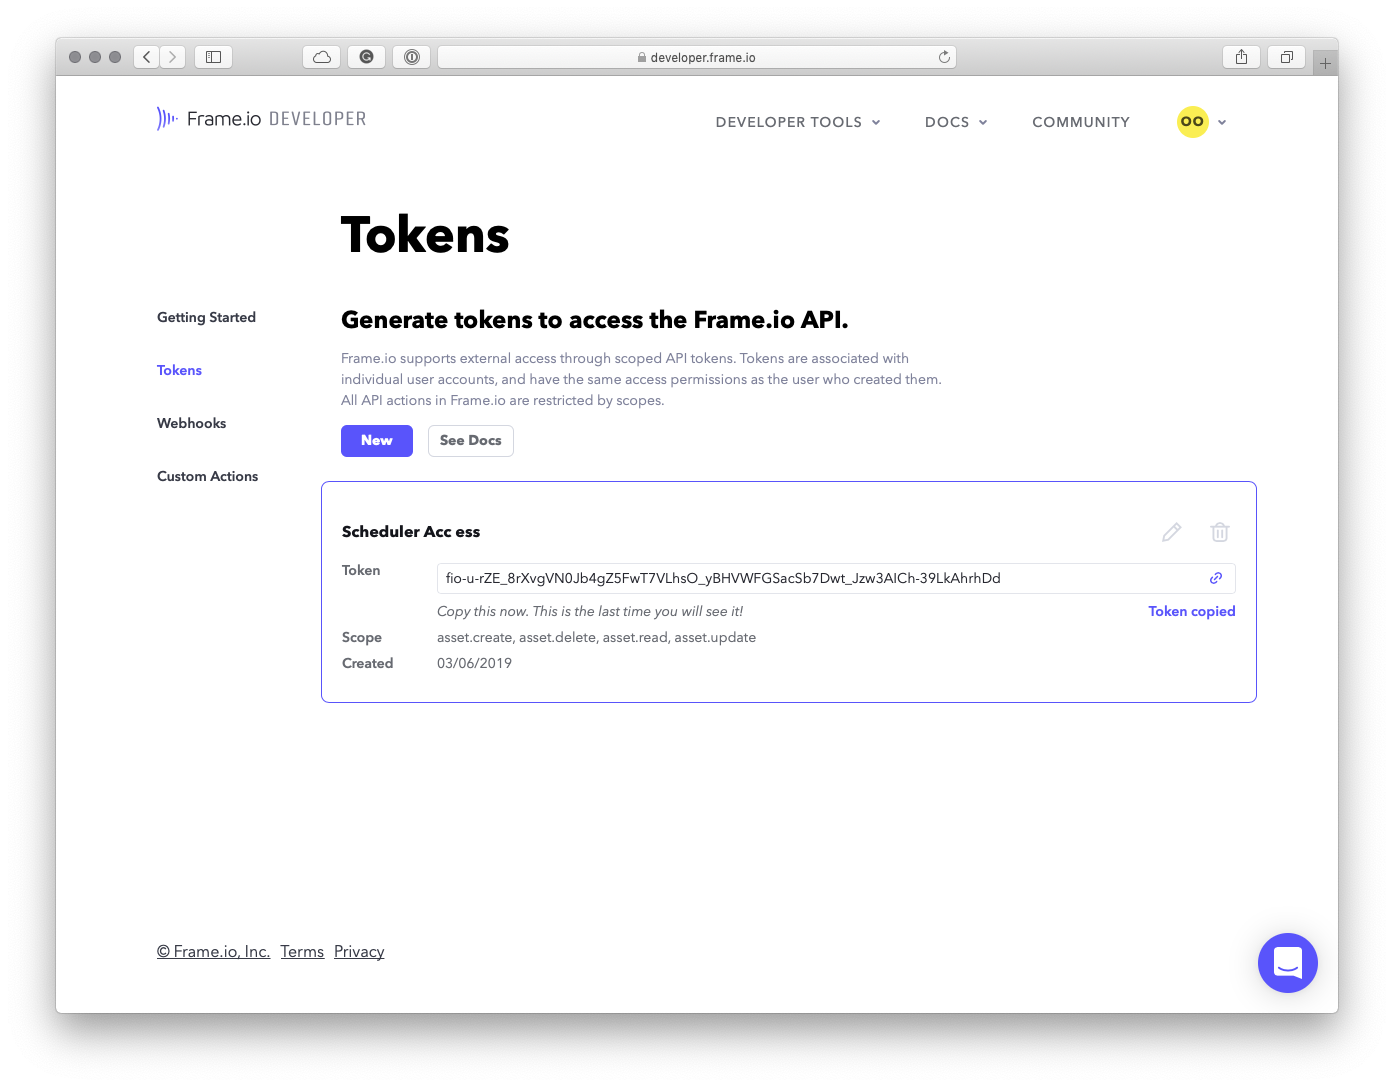 Frame.io Tokens Page